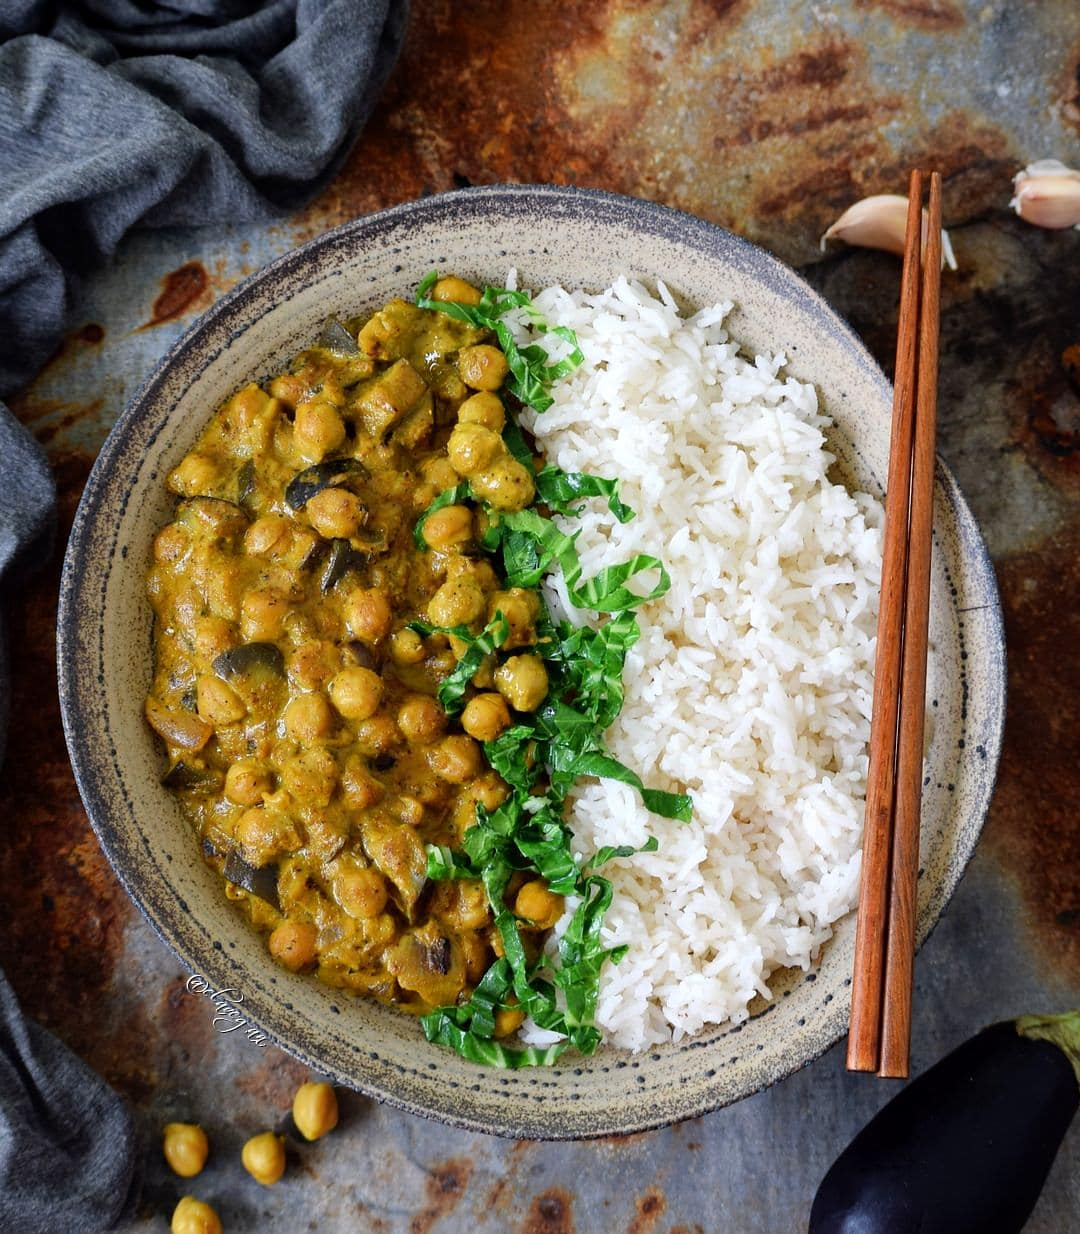 Vegan chickpea curry with eggplant - this recipe is oil free, gluten free and healthy